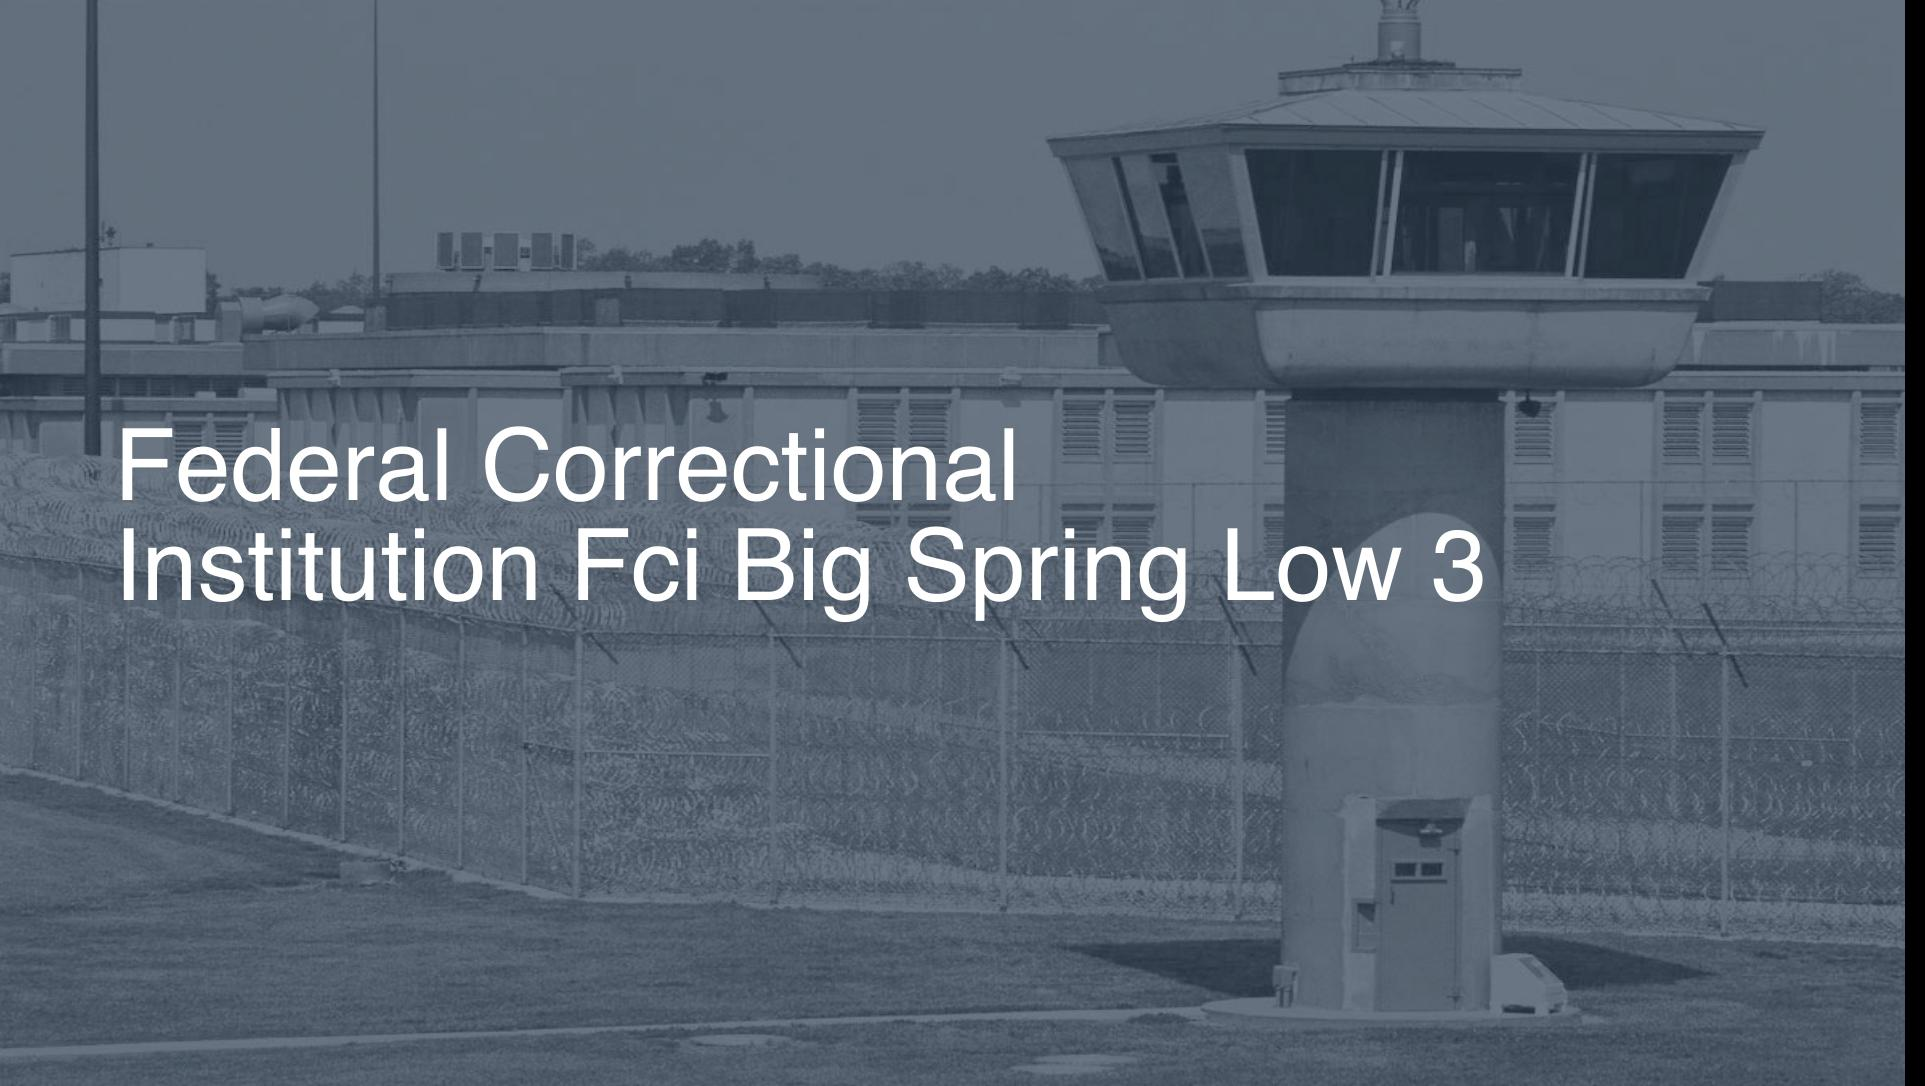 Federal Correctional Institution (FCI) - Big Spring Low correctional facility picture